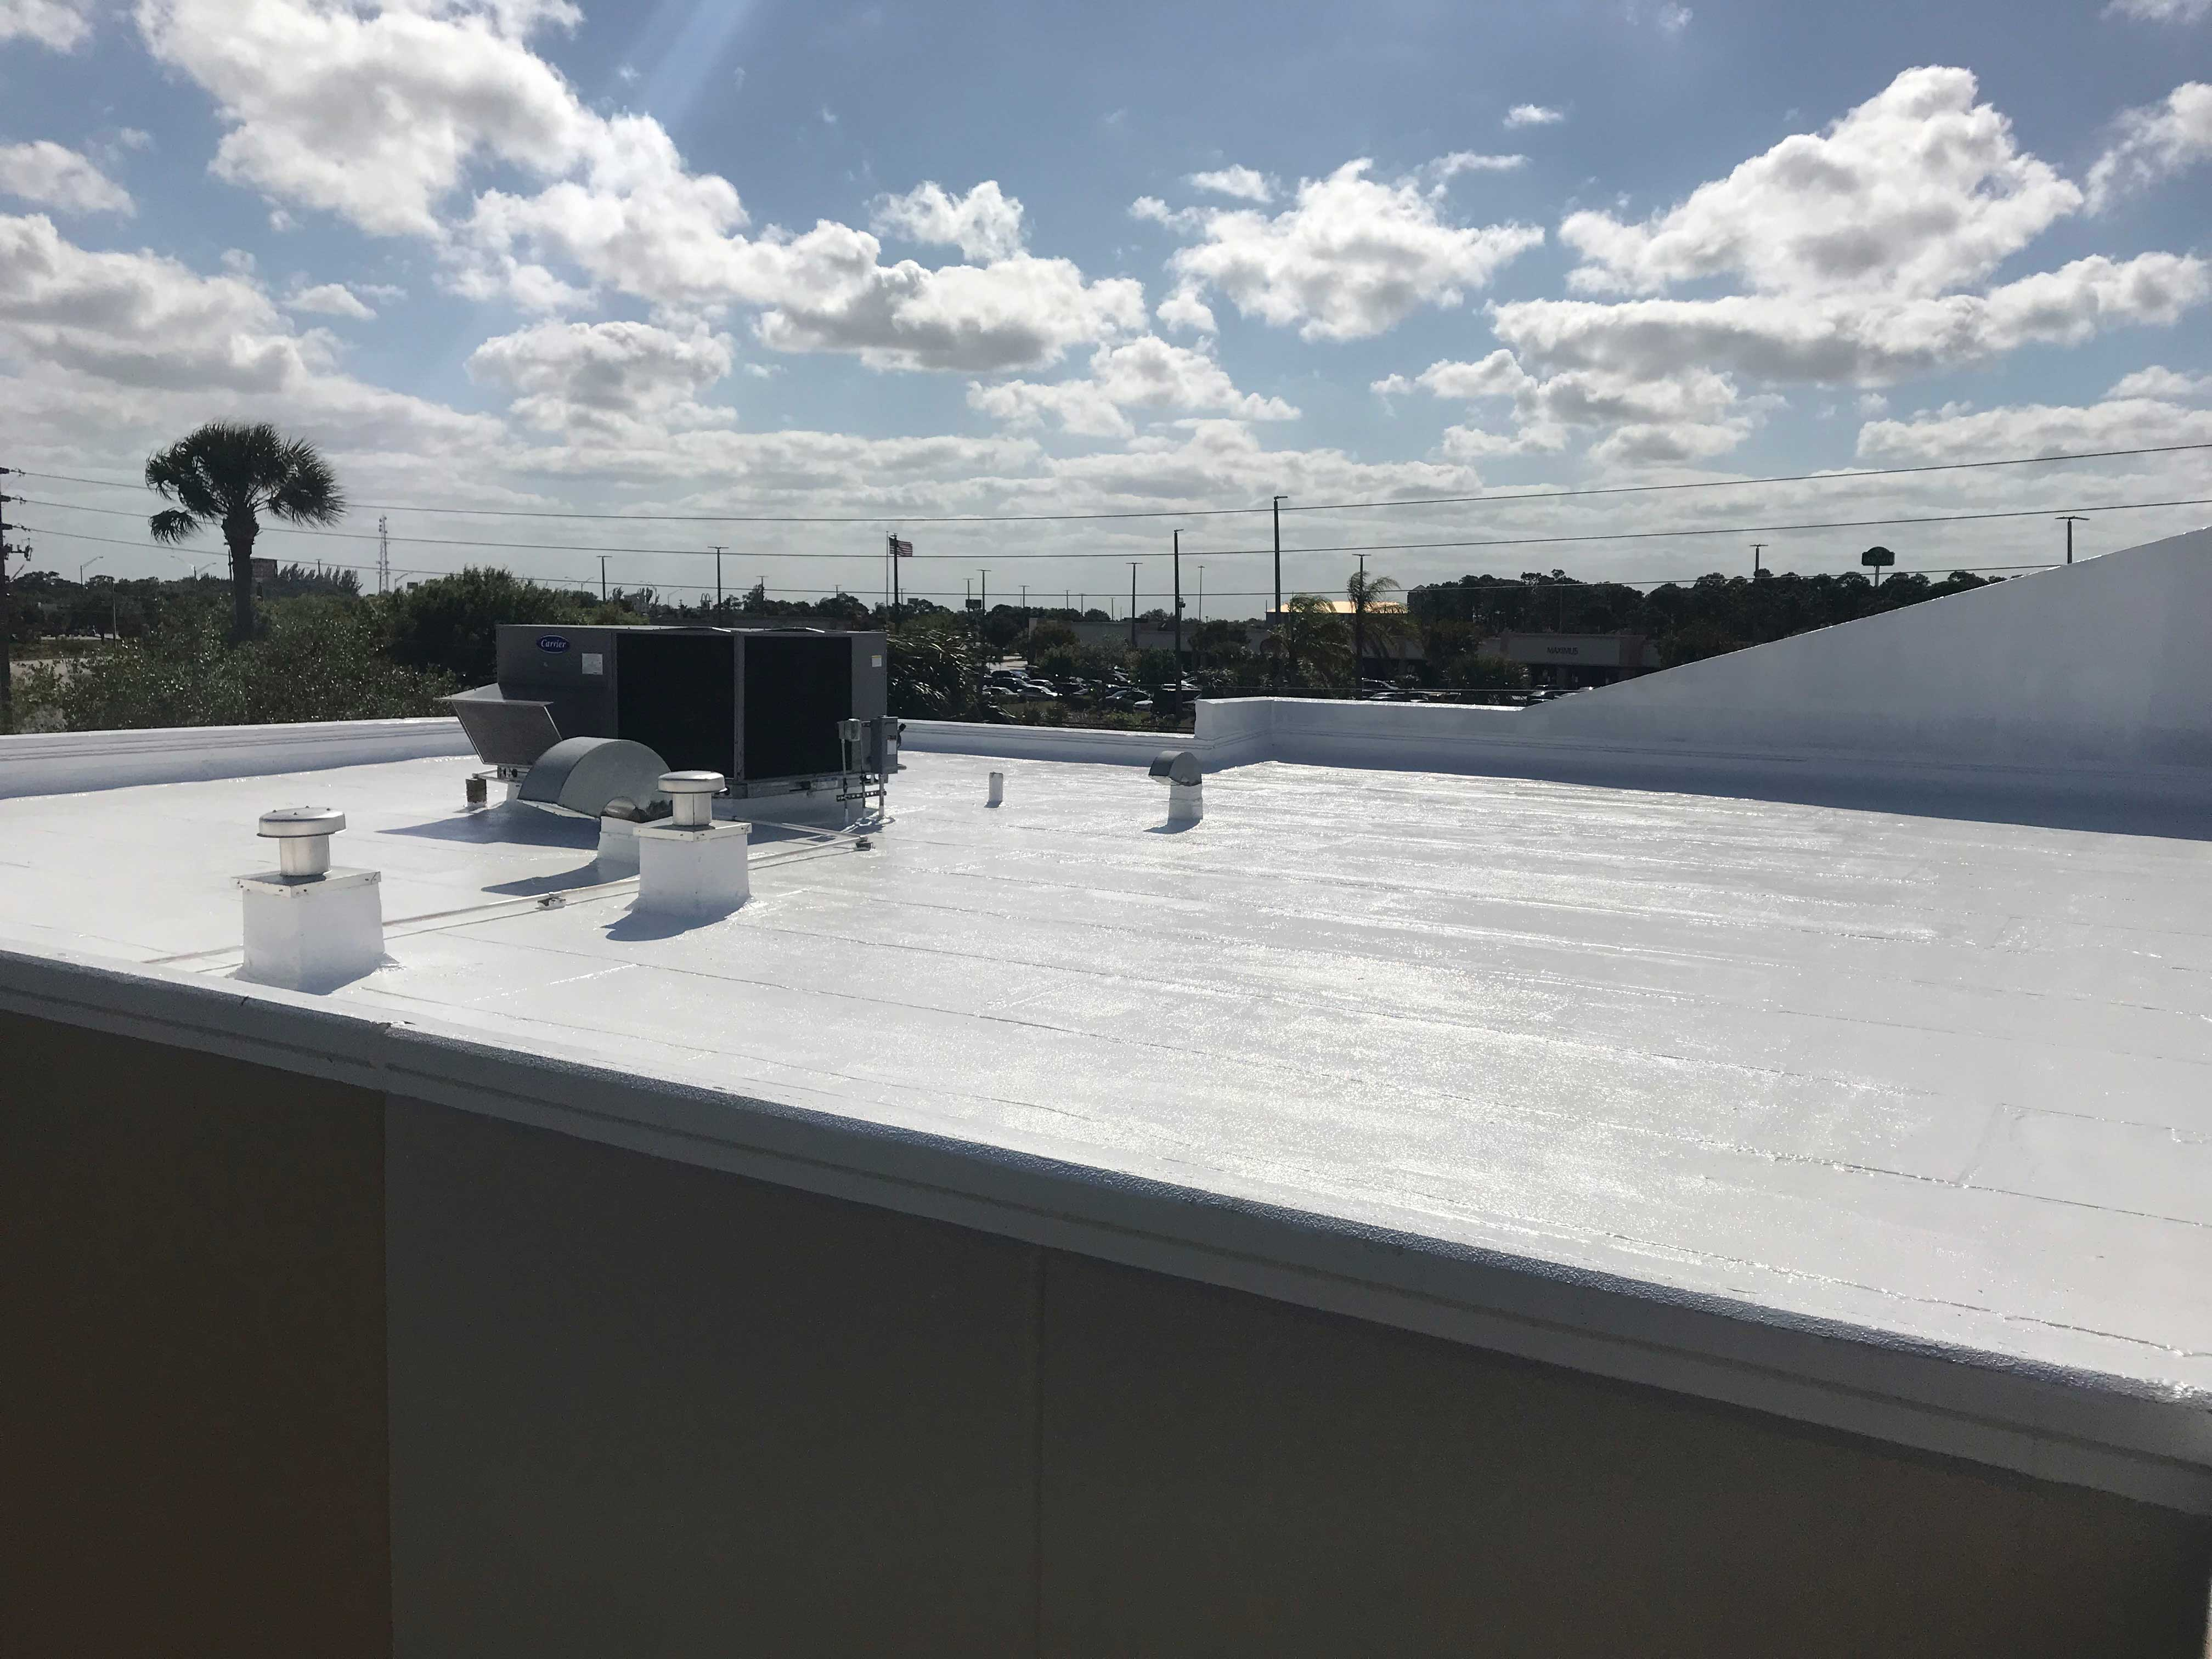 Naples Fl Spray Foam And Silicone Commercial Roofing